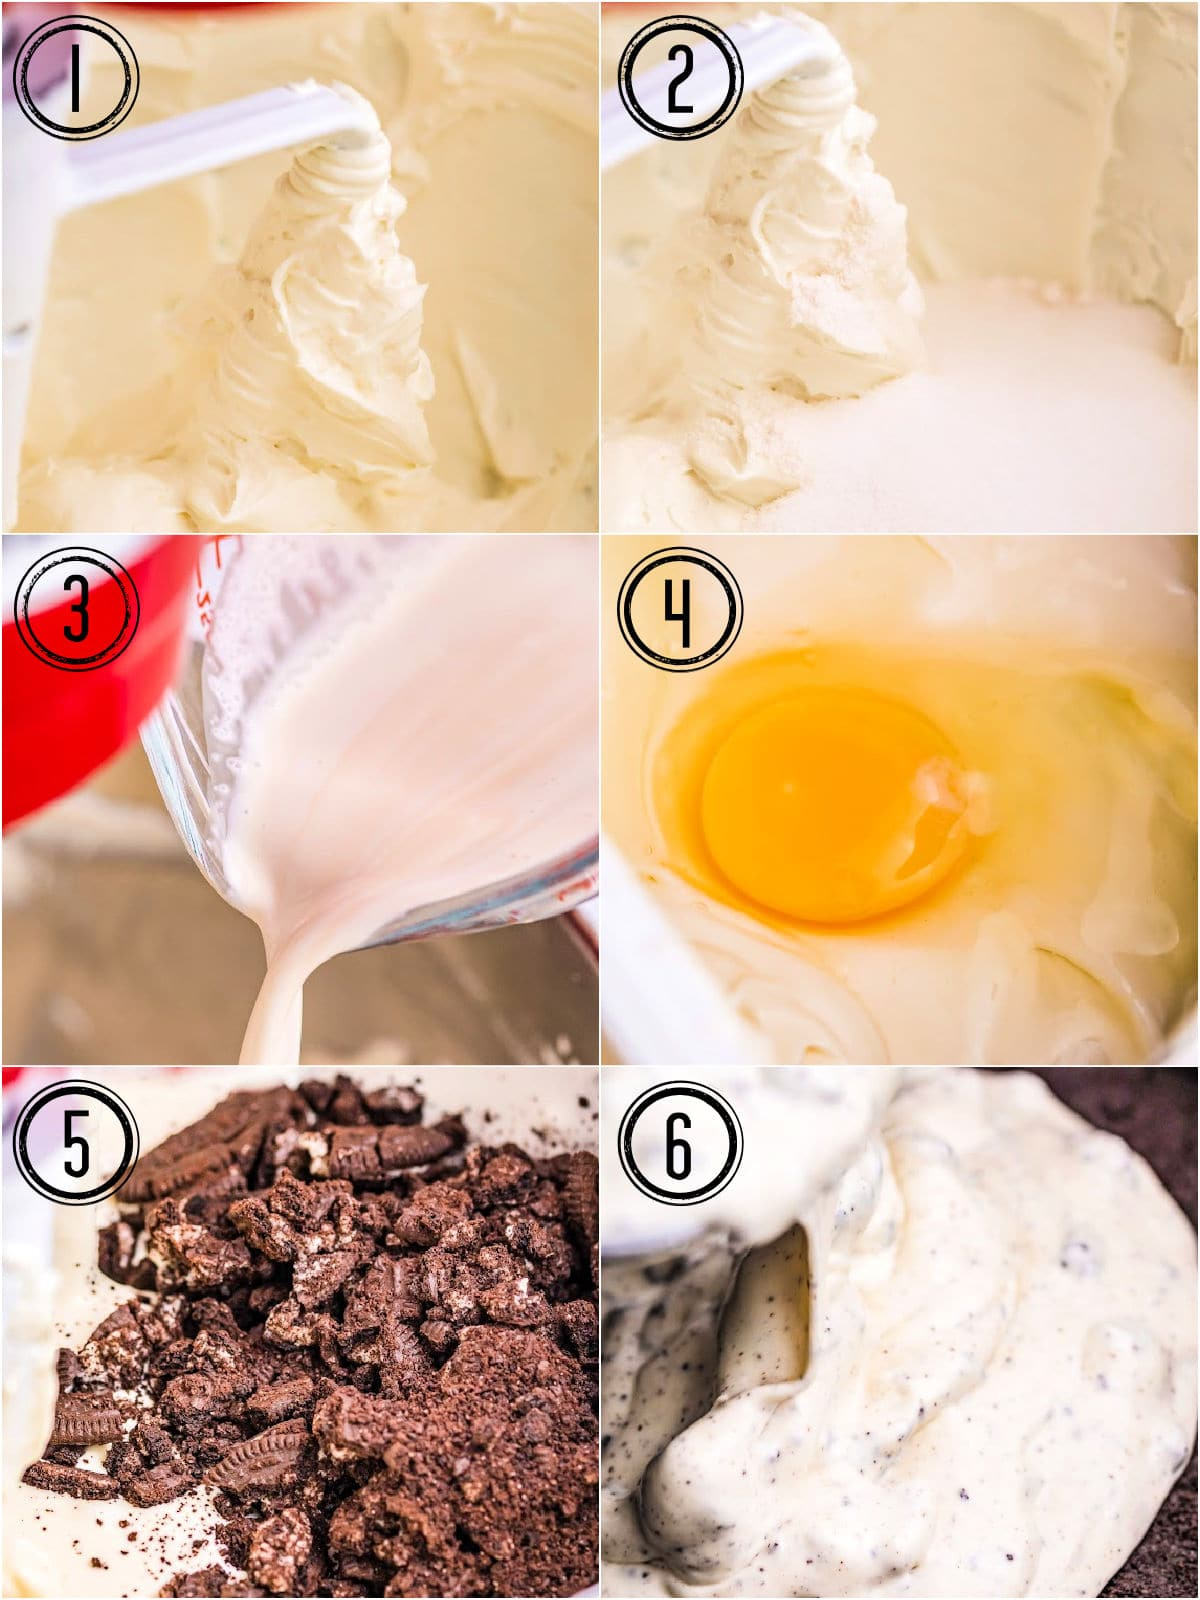 six image collage showing how to make oreo cheesecake that needs to be baked.